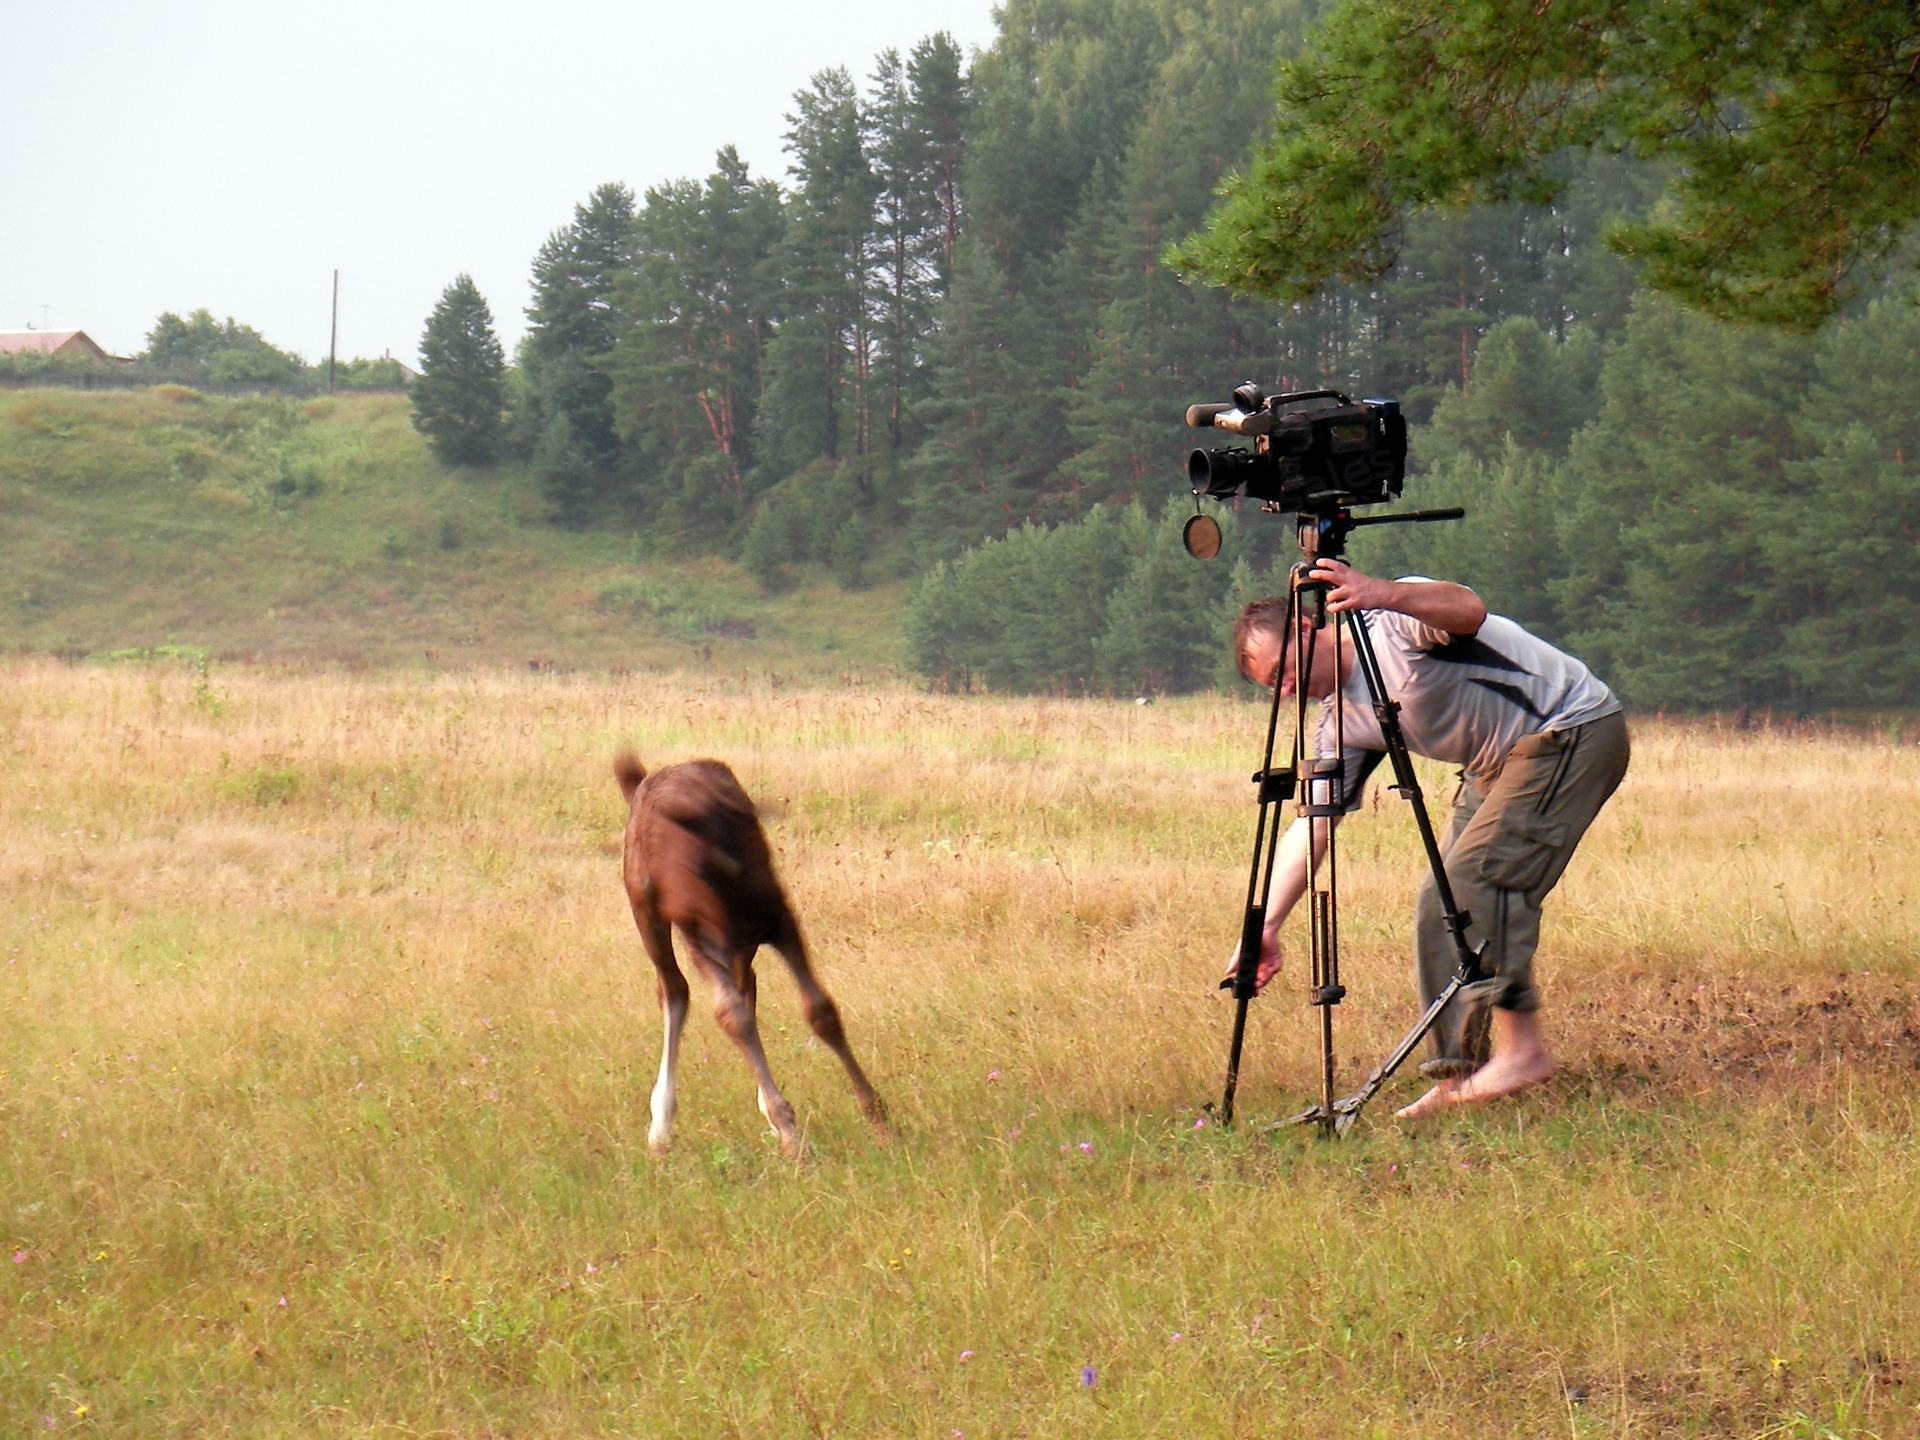 Horse foal was afraid and runs away from videographer